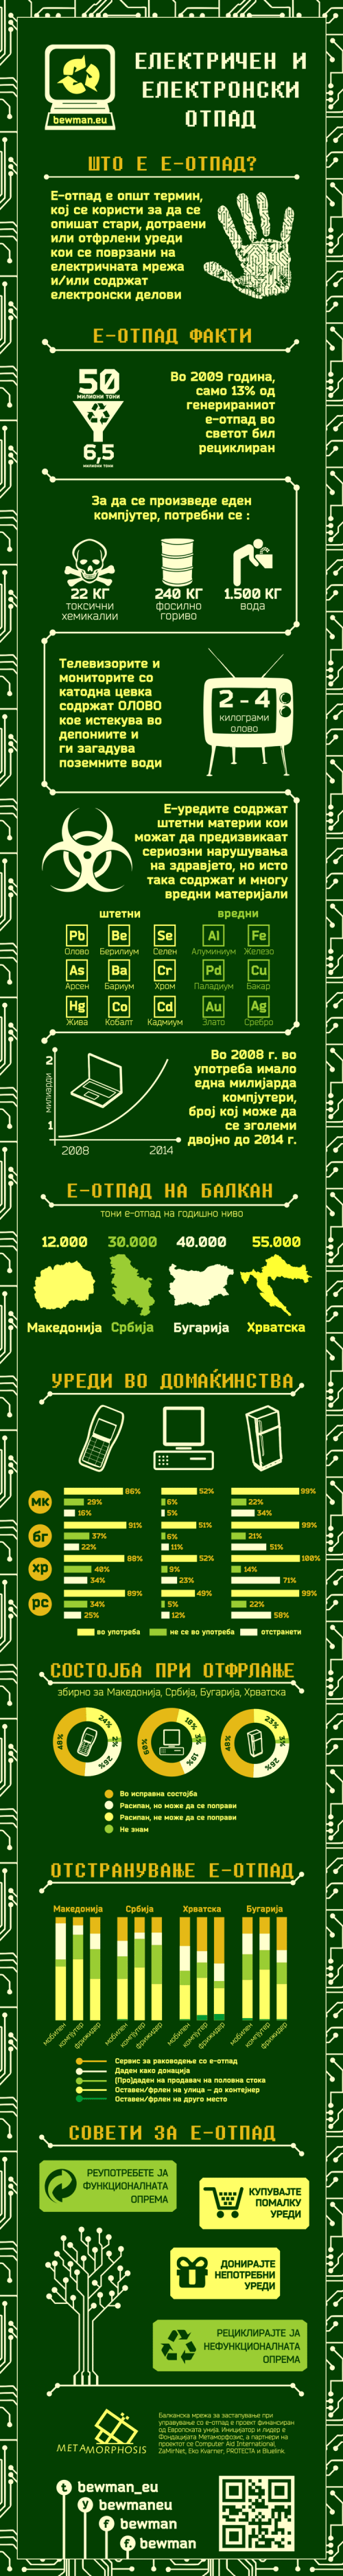 bewman-infographic